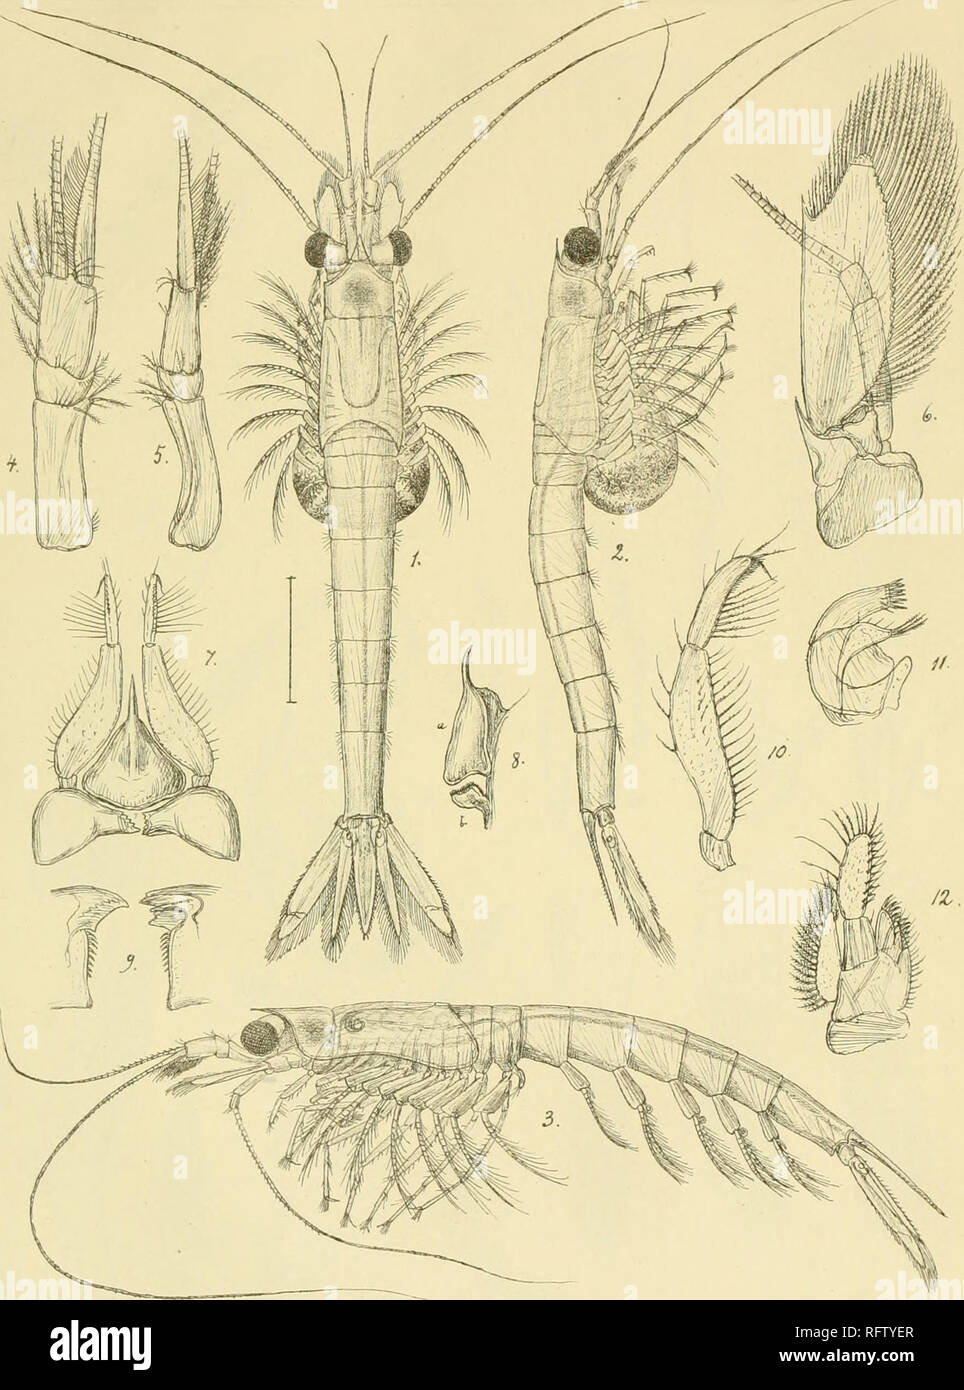 . Carcinologiske bidrag til Norges fauna. Mysidae; Crustacea. 7Z^-xi7r.. Please note that these images are extracted from scanned page images that may have been digitally enhanced for readability - coloration and appearance of these illustrations may not perfectly resemble the original work.. Sars, G. O. (Georg Ossian), 1837-1927; Kongelige Norske videnskabers selskab. Christiania, Brøgger & Christie's bogtrykkeri Stock Photo